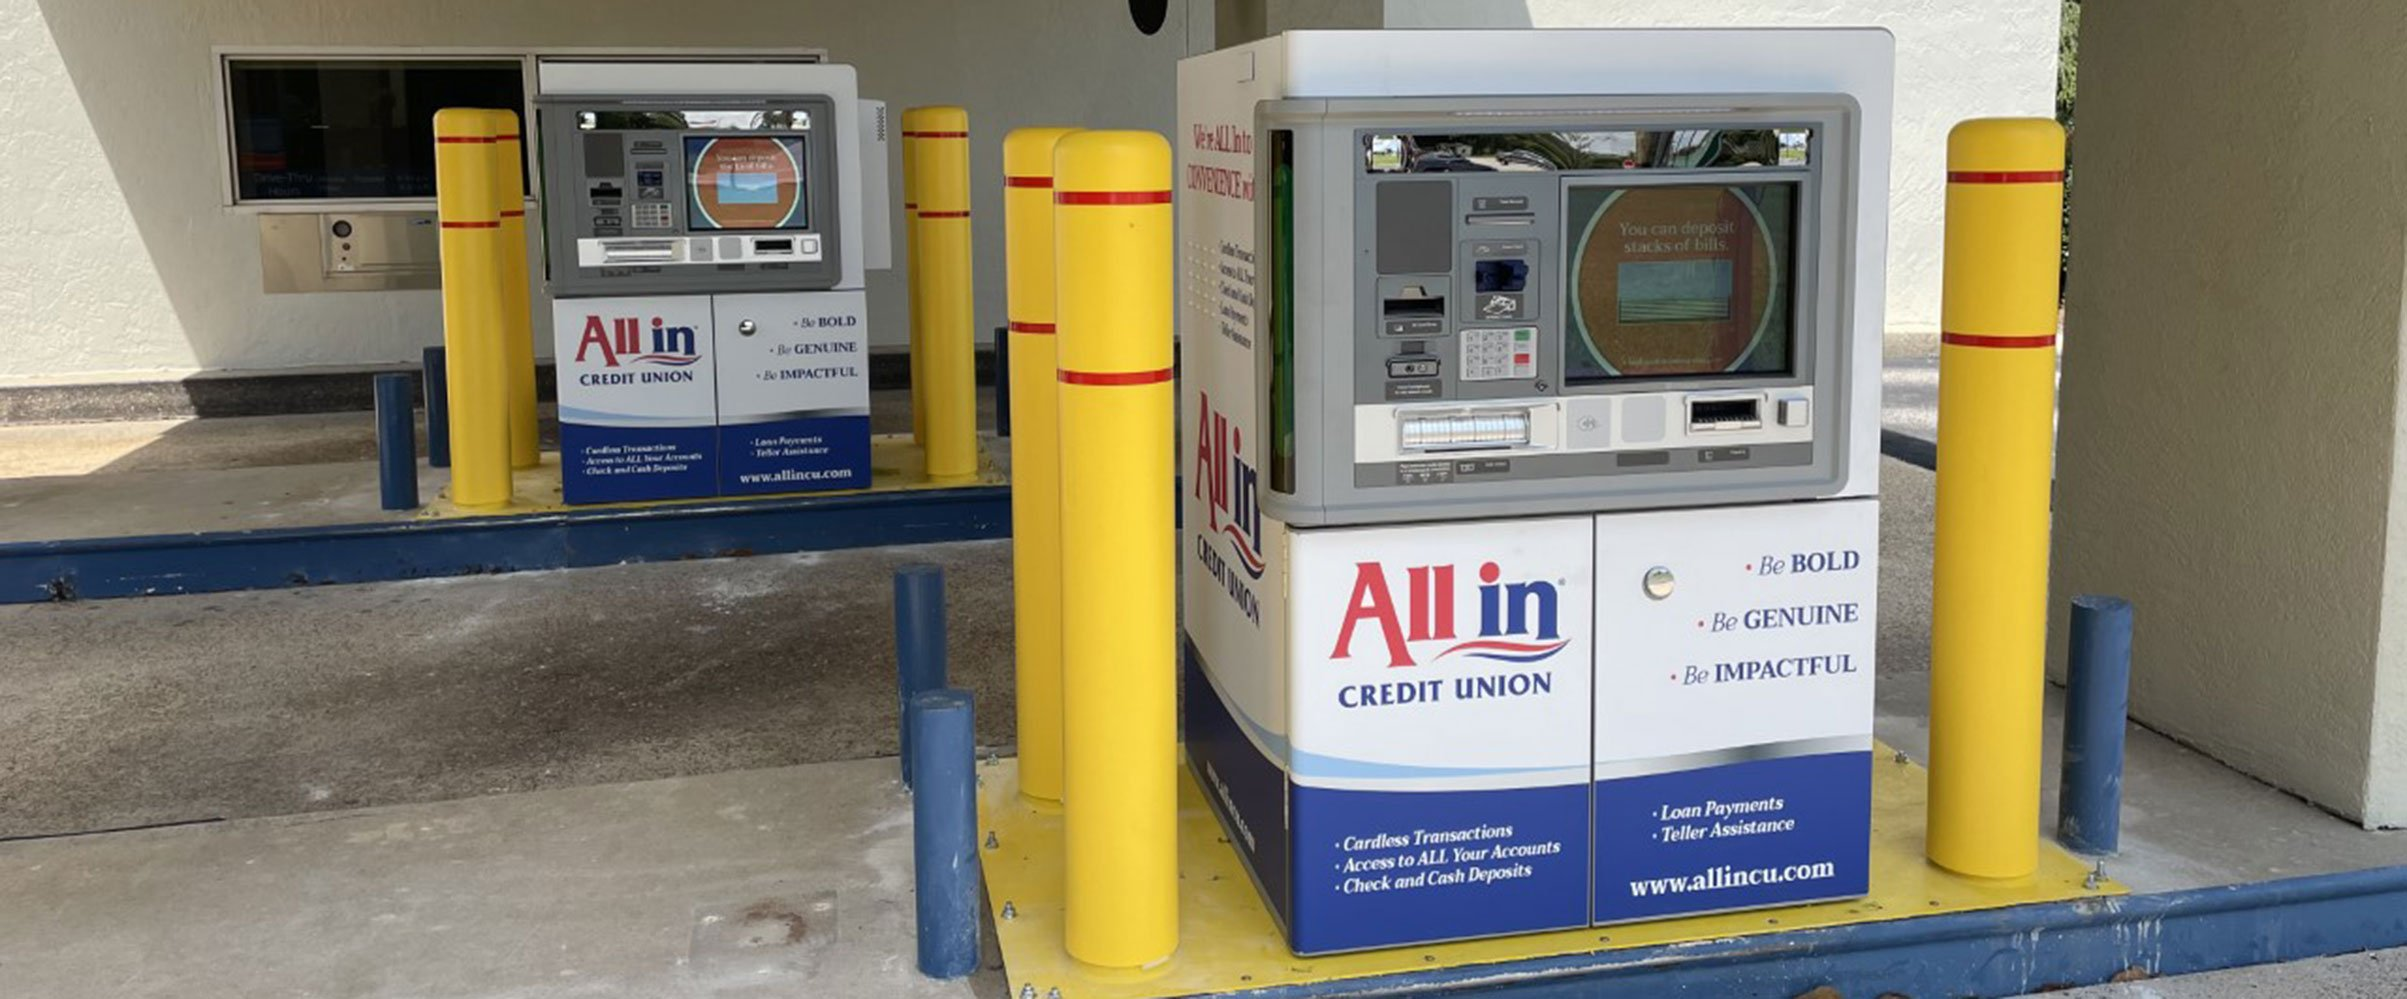 All In Credit Union branded ITMs